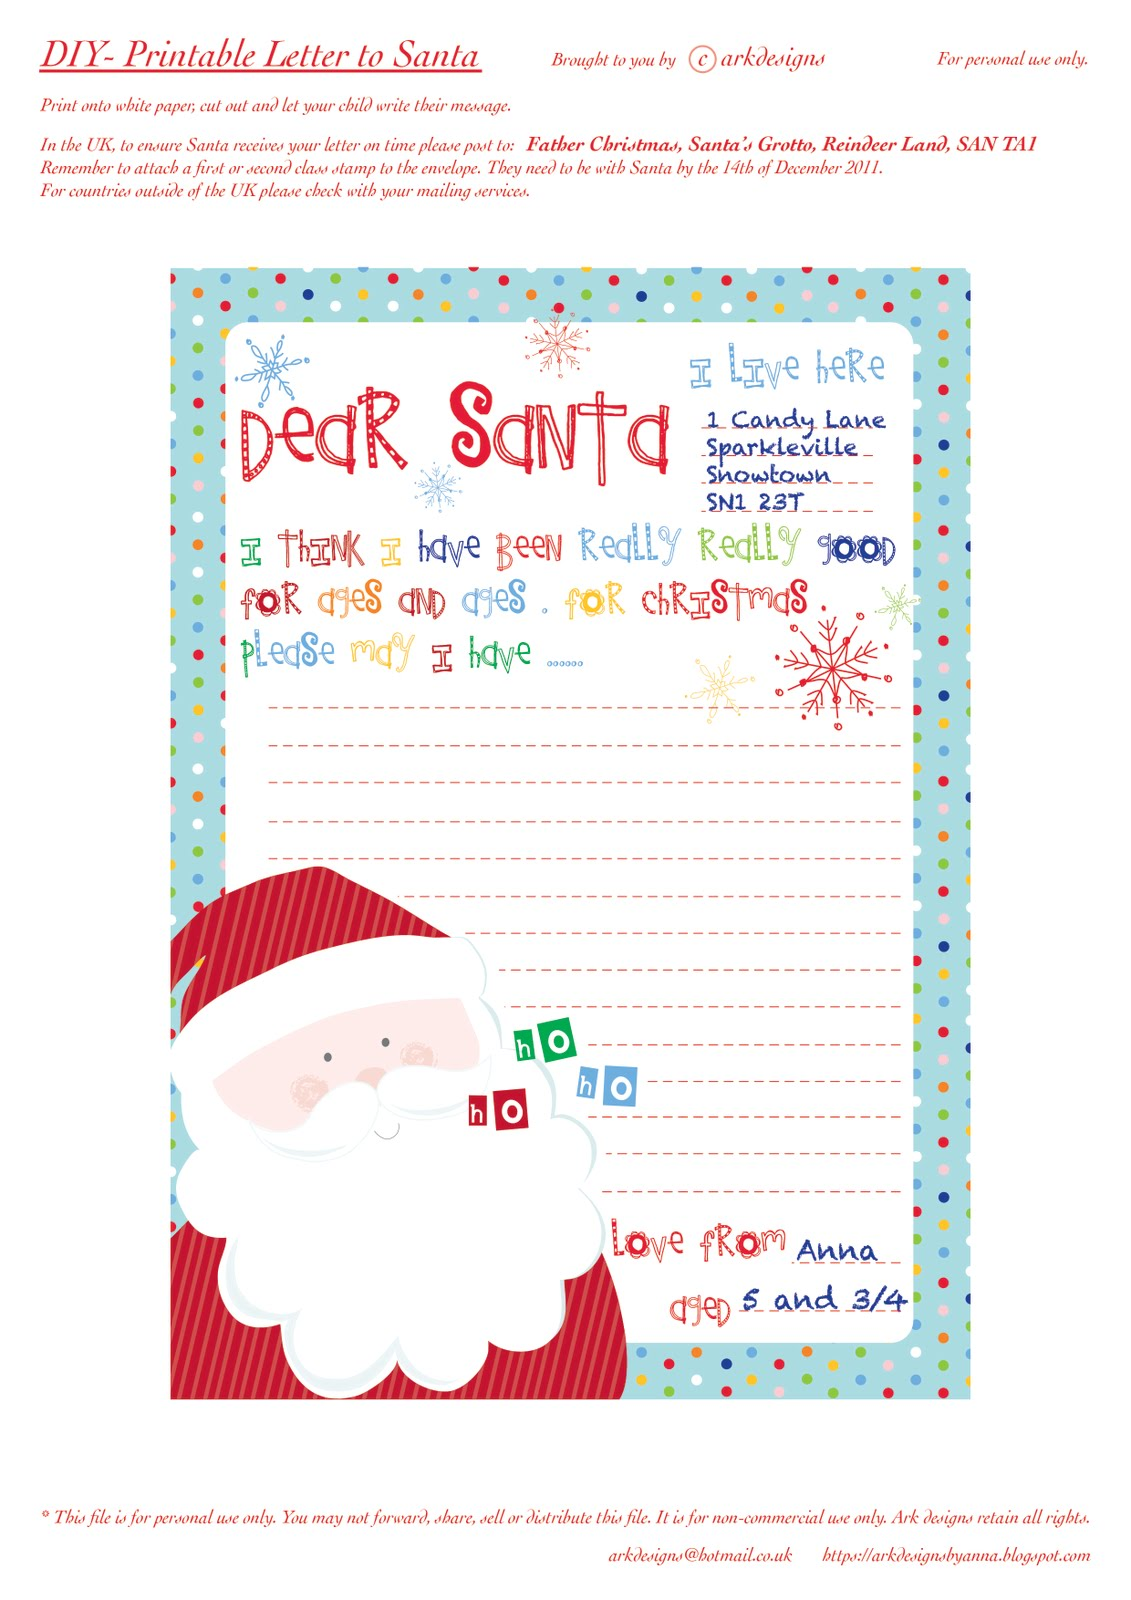 Here's my printable Letter to Santa/Father Christmas.